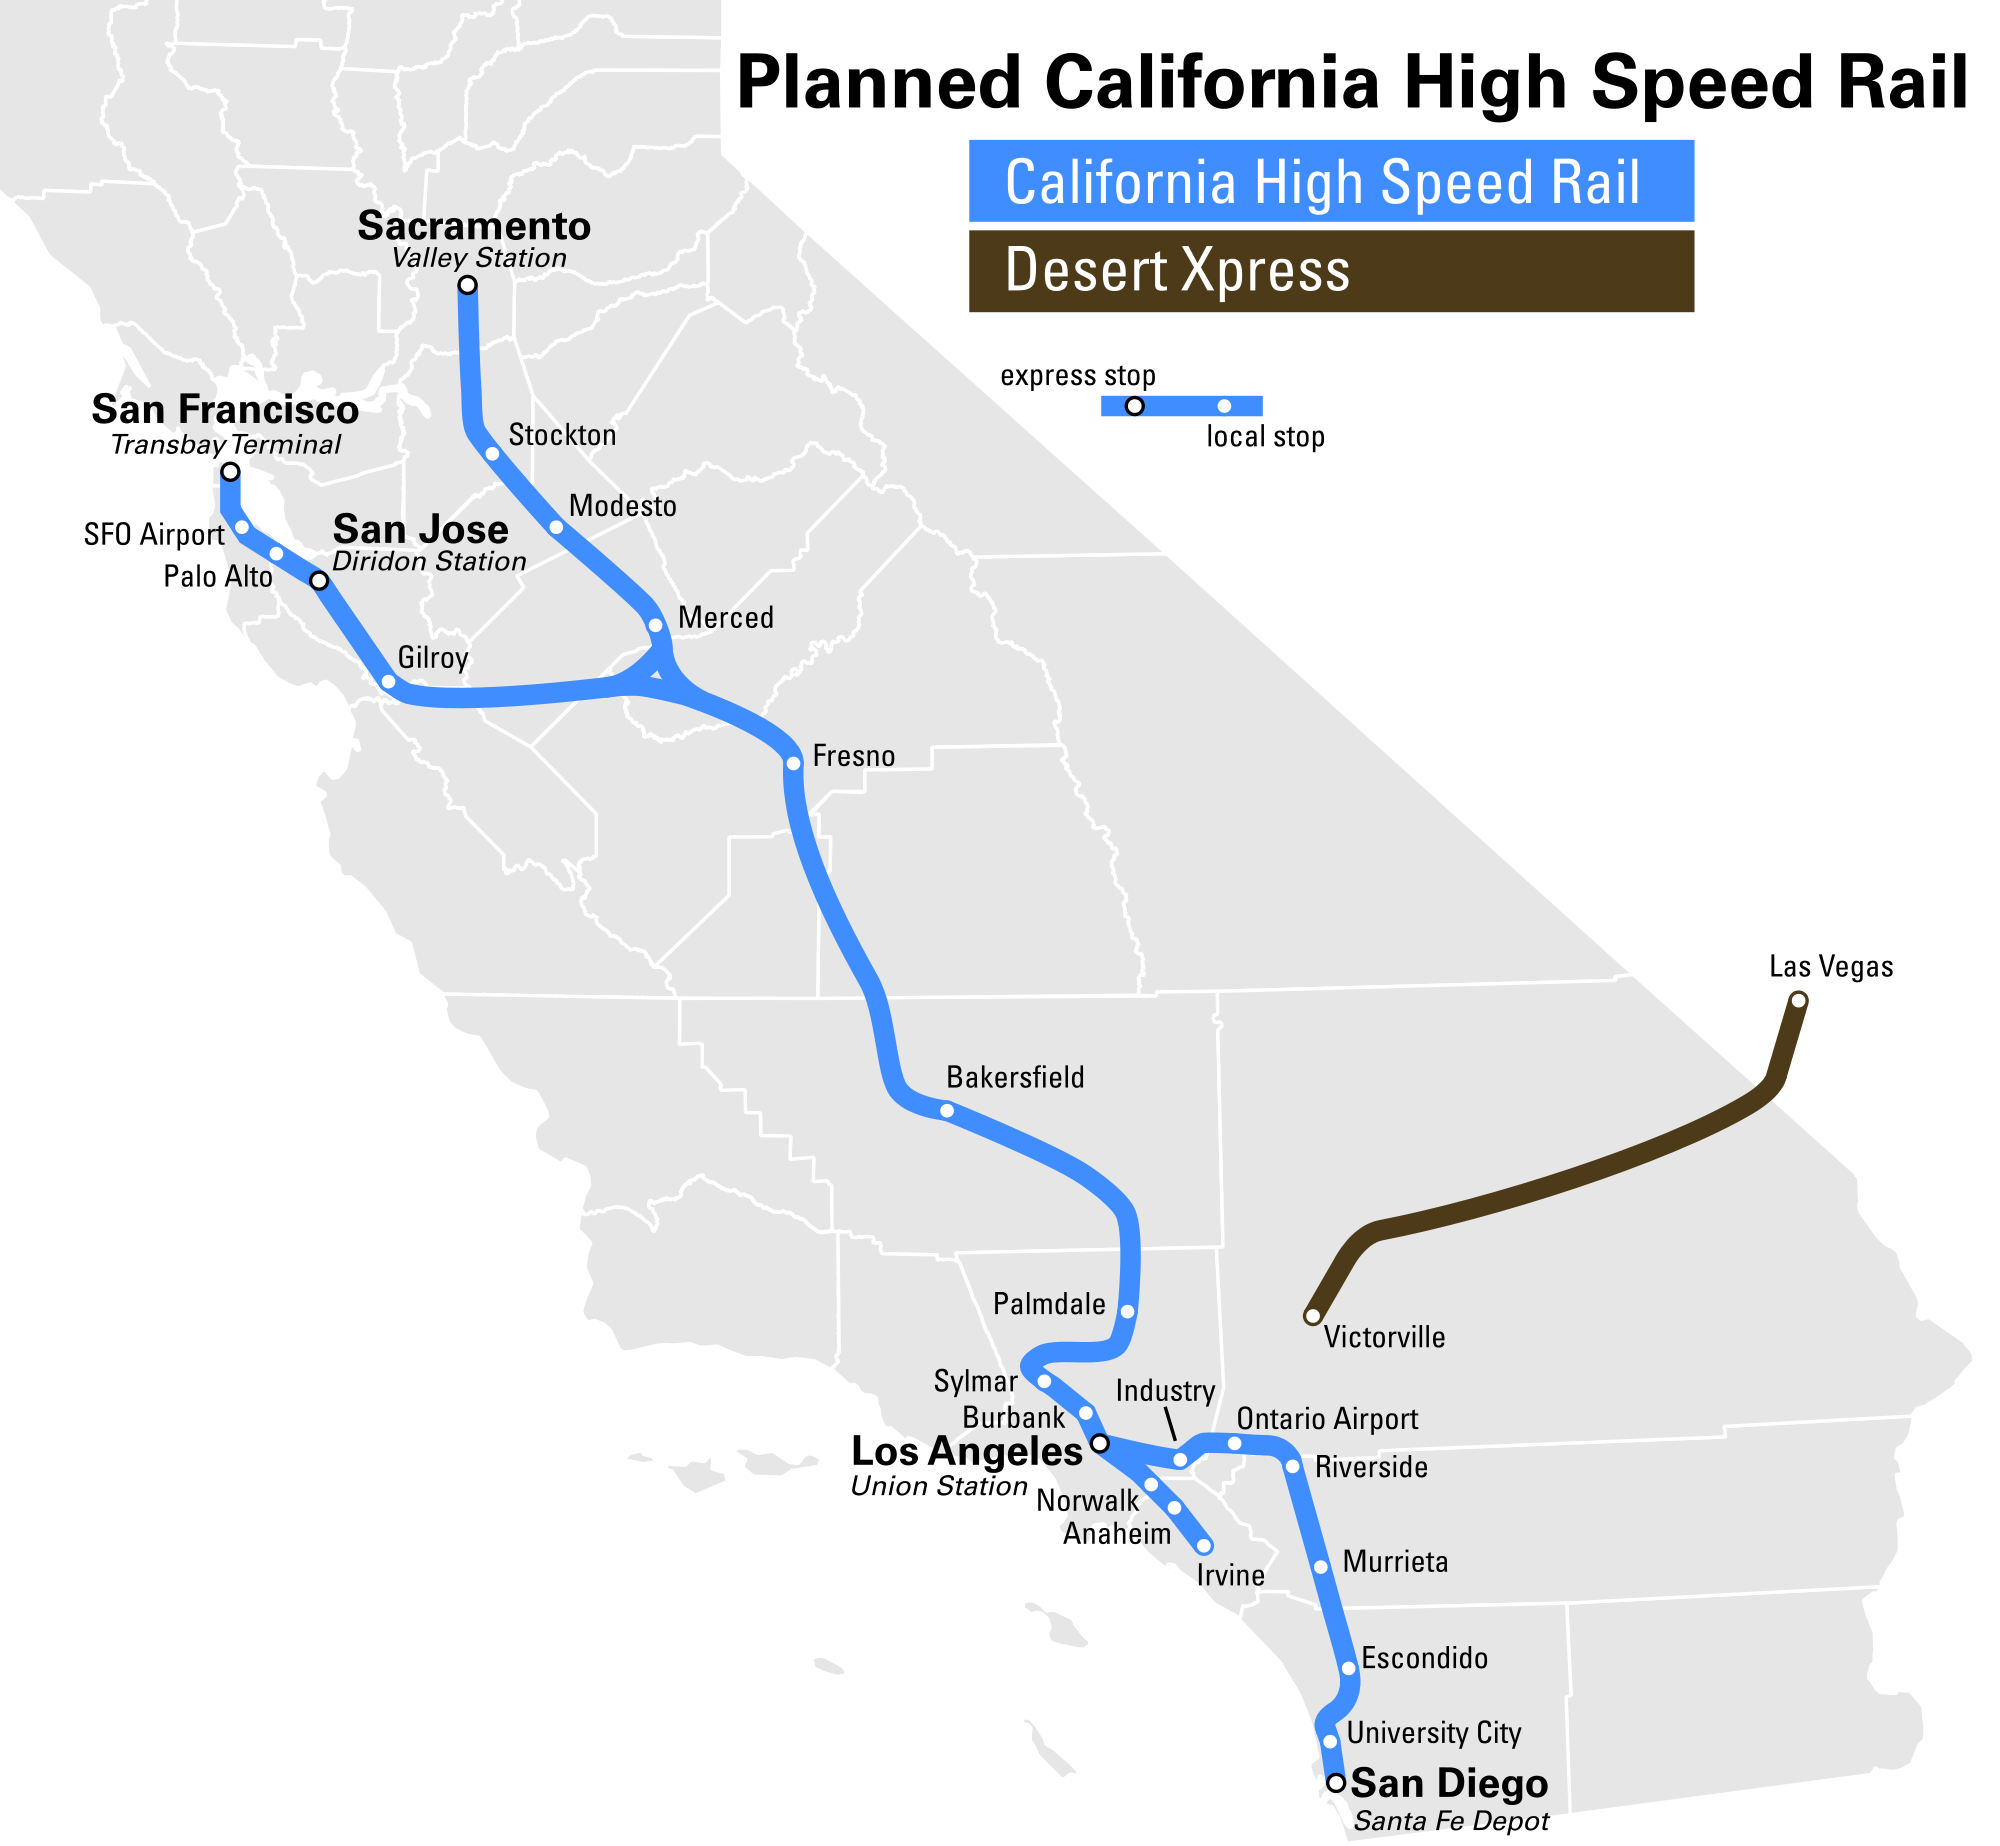 trains in california map High Speed Rail To Las Vegas Breaks Ground 2017 Canyon News